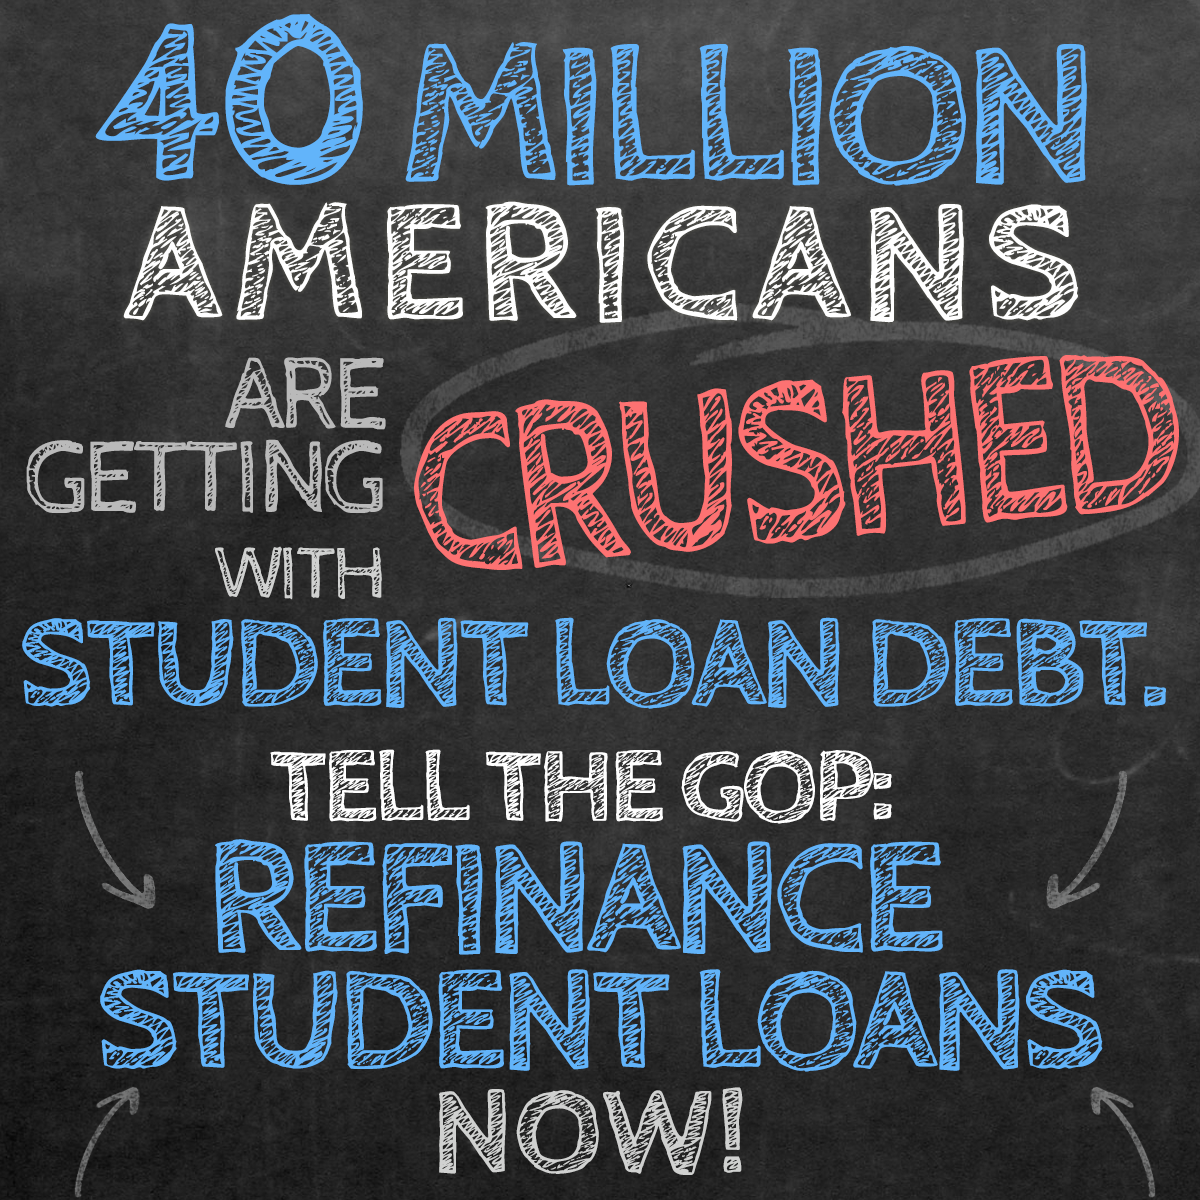 Student loan debt holds back too many New Mexicans. RT to support a #MiddleClassBudget that puts students first. http://t.co/zIdsIW9DWD